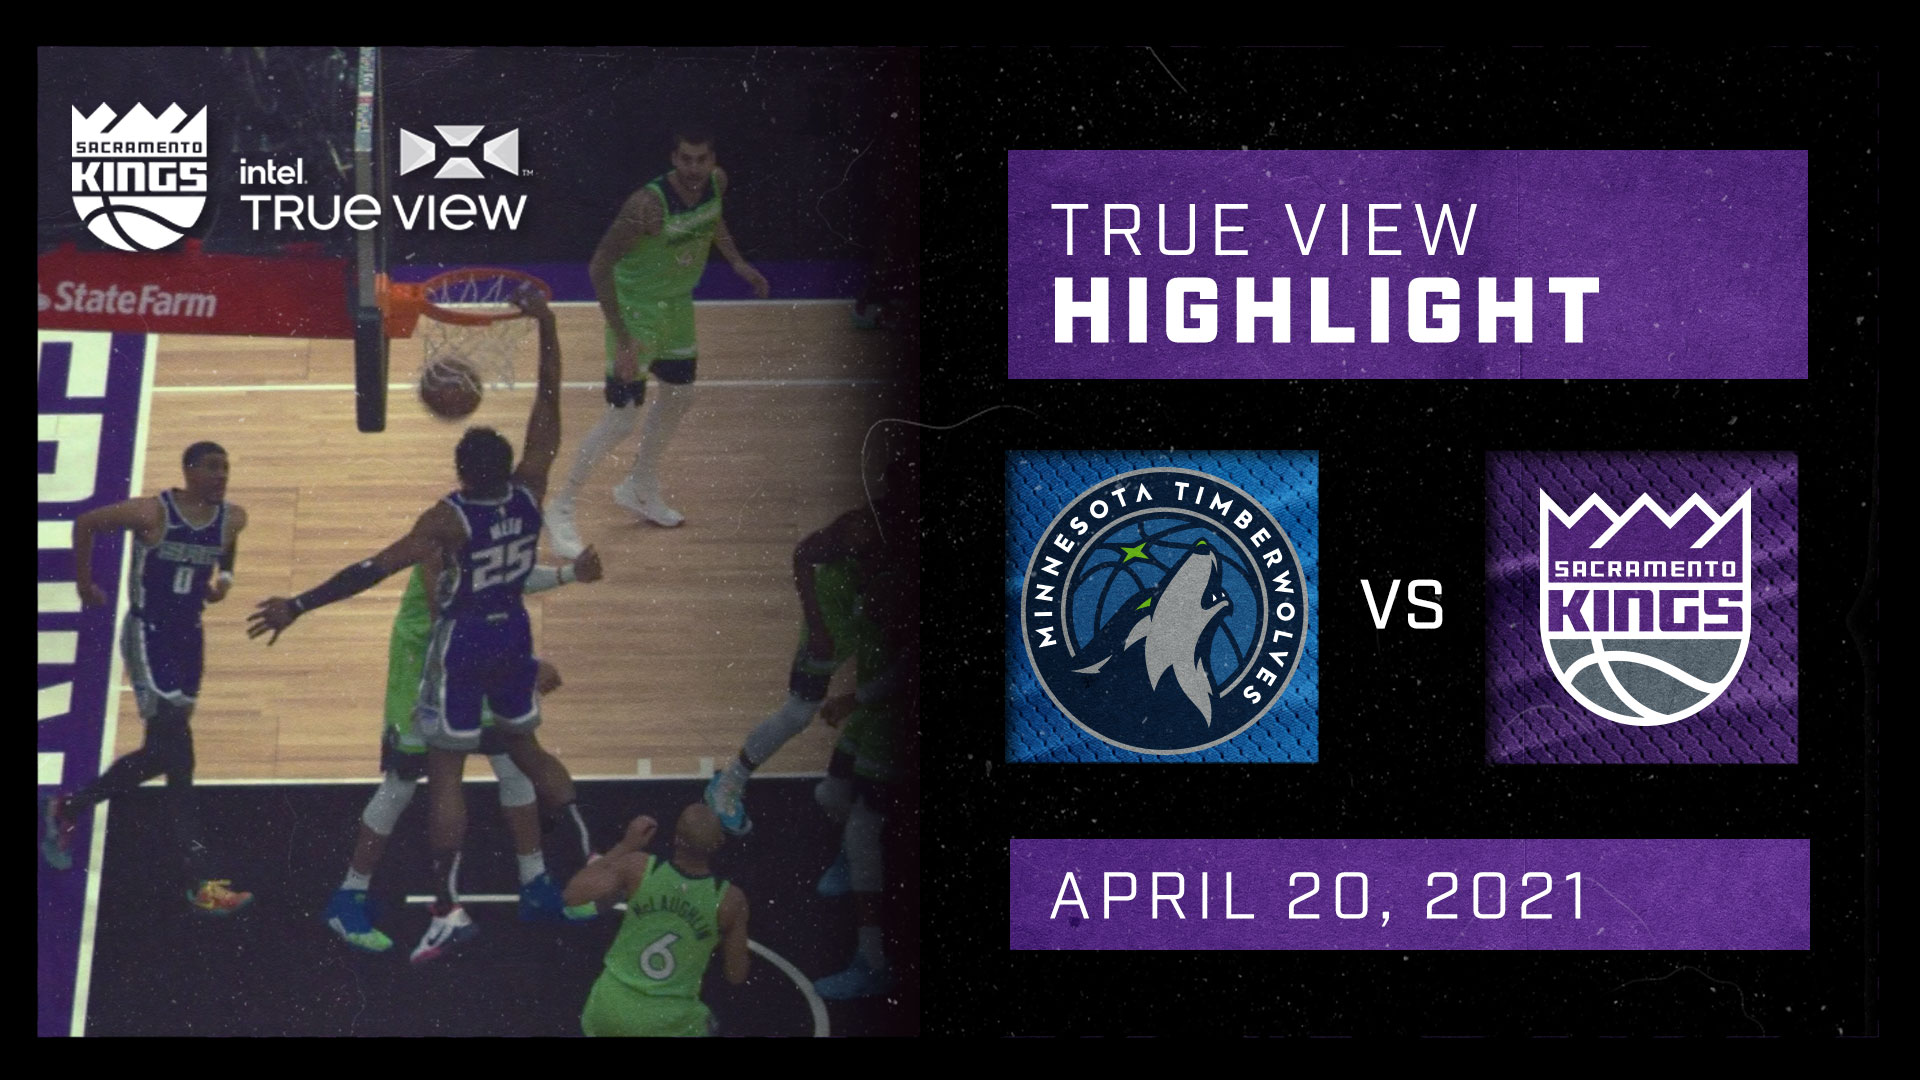 Intel True View Highlight - Haliburton Lob to Metu vs Timberwolves 4.20.21